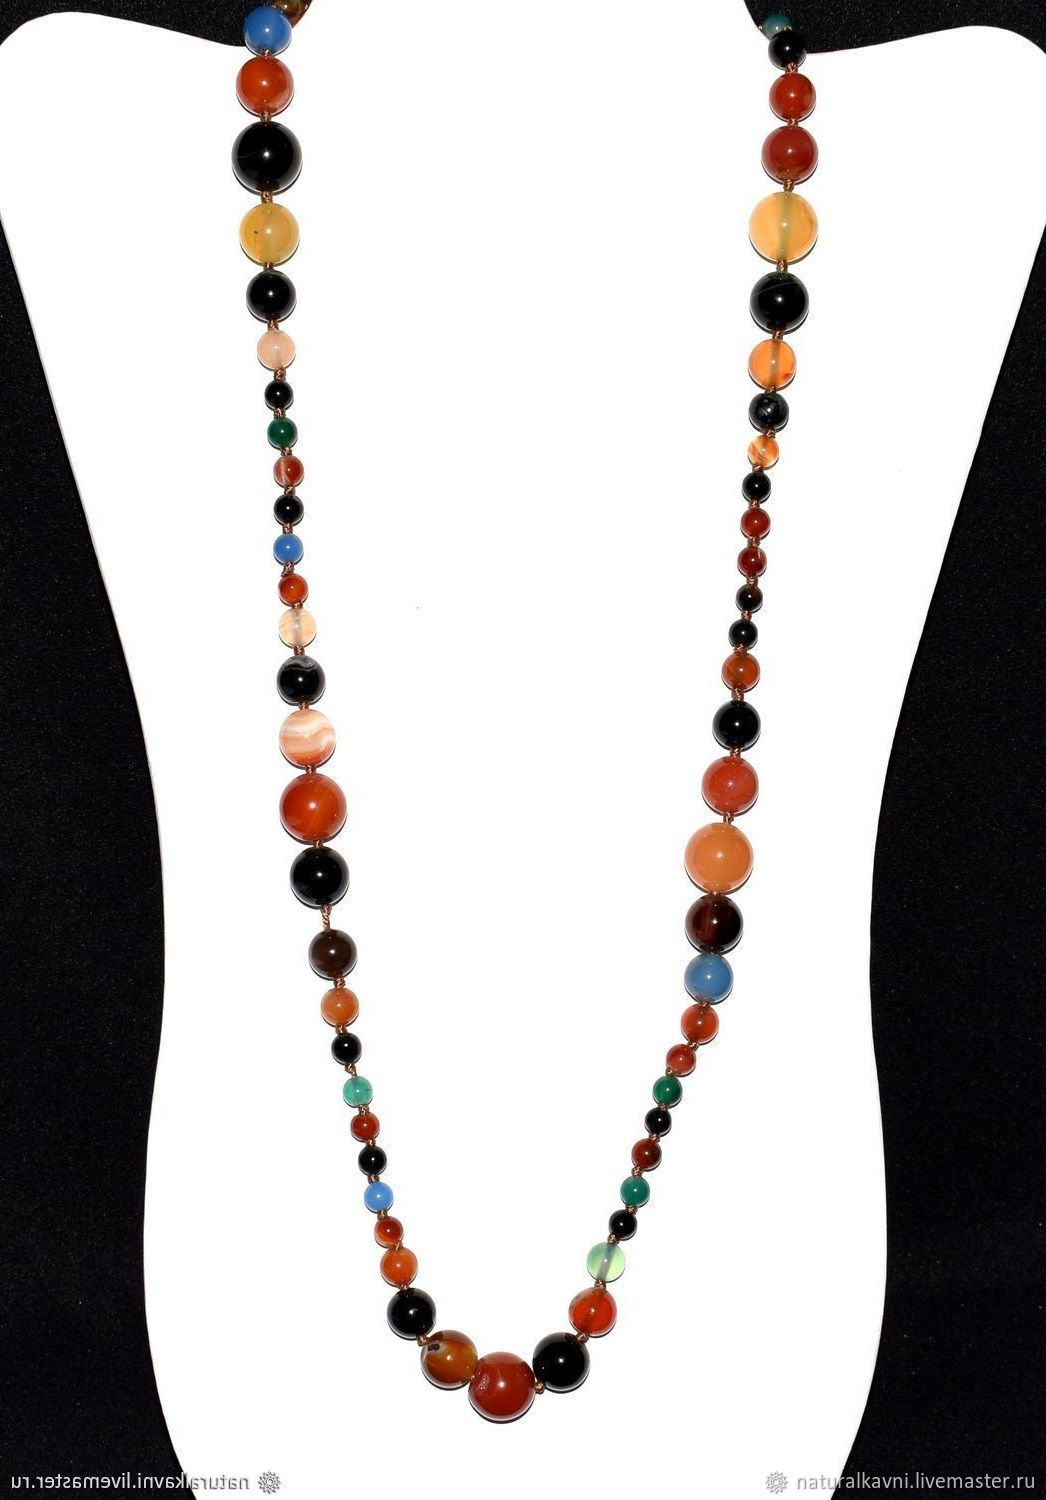 83f0f9ec04 My Necklaces & Beads handmade. Colorful choker / necklace of natural agate.  naturalkavni. My